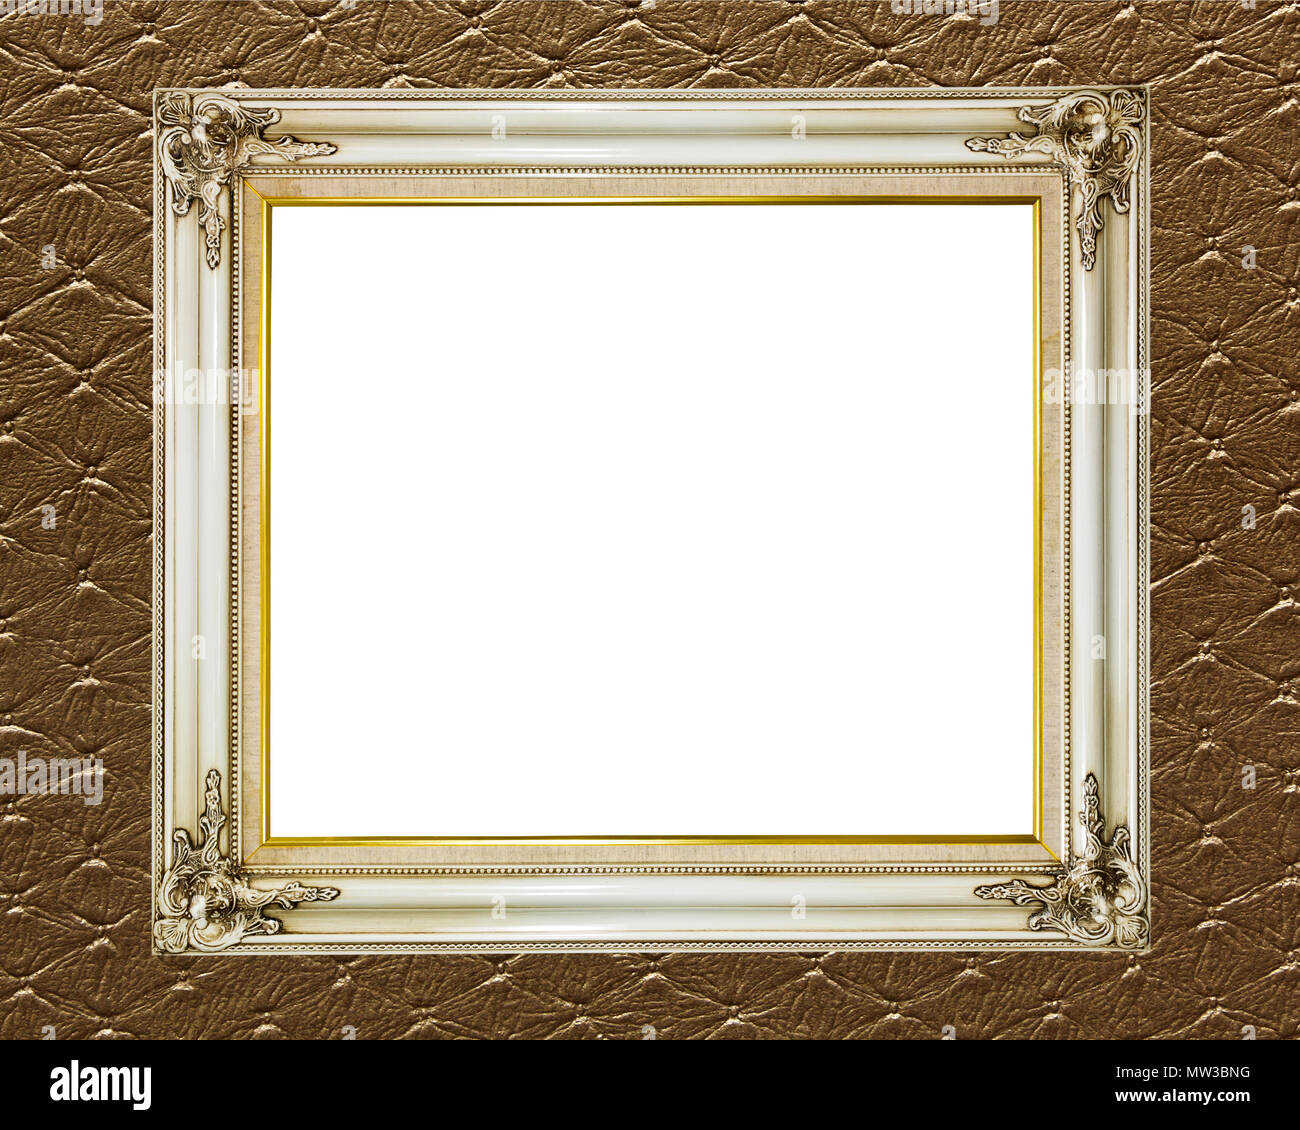 Blank Old Vintage Frame On Abstract Retro Wallpaper Background Stock